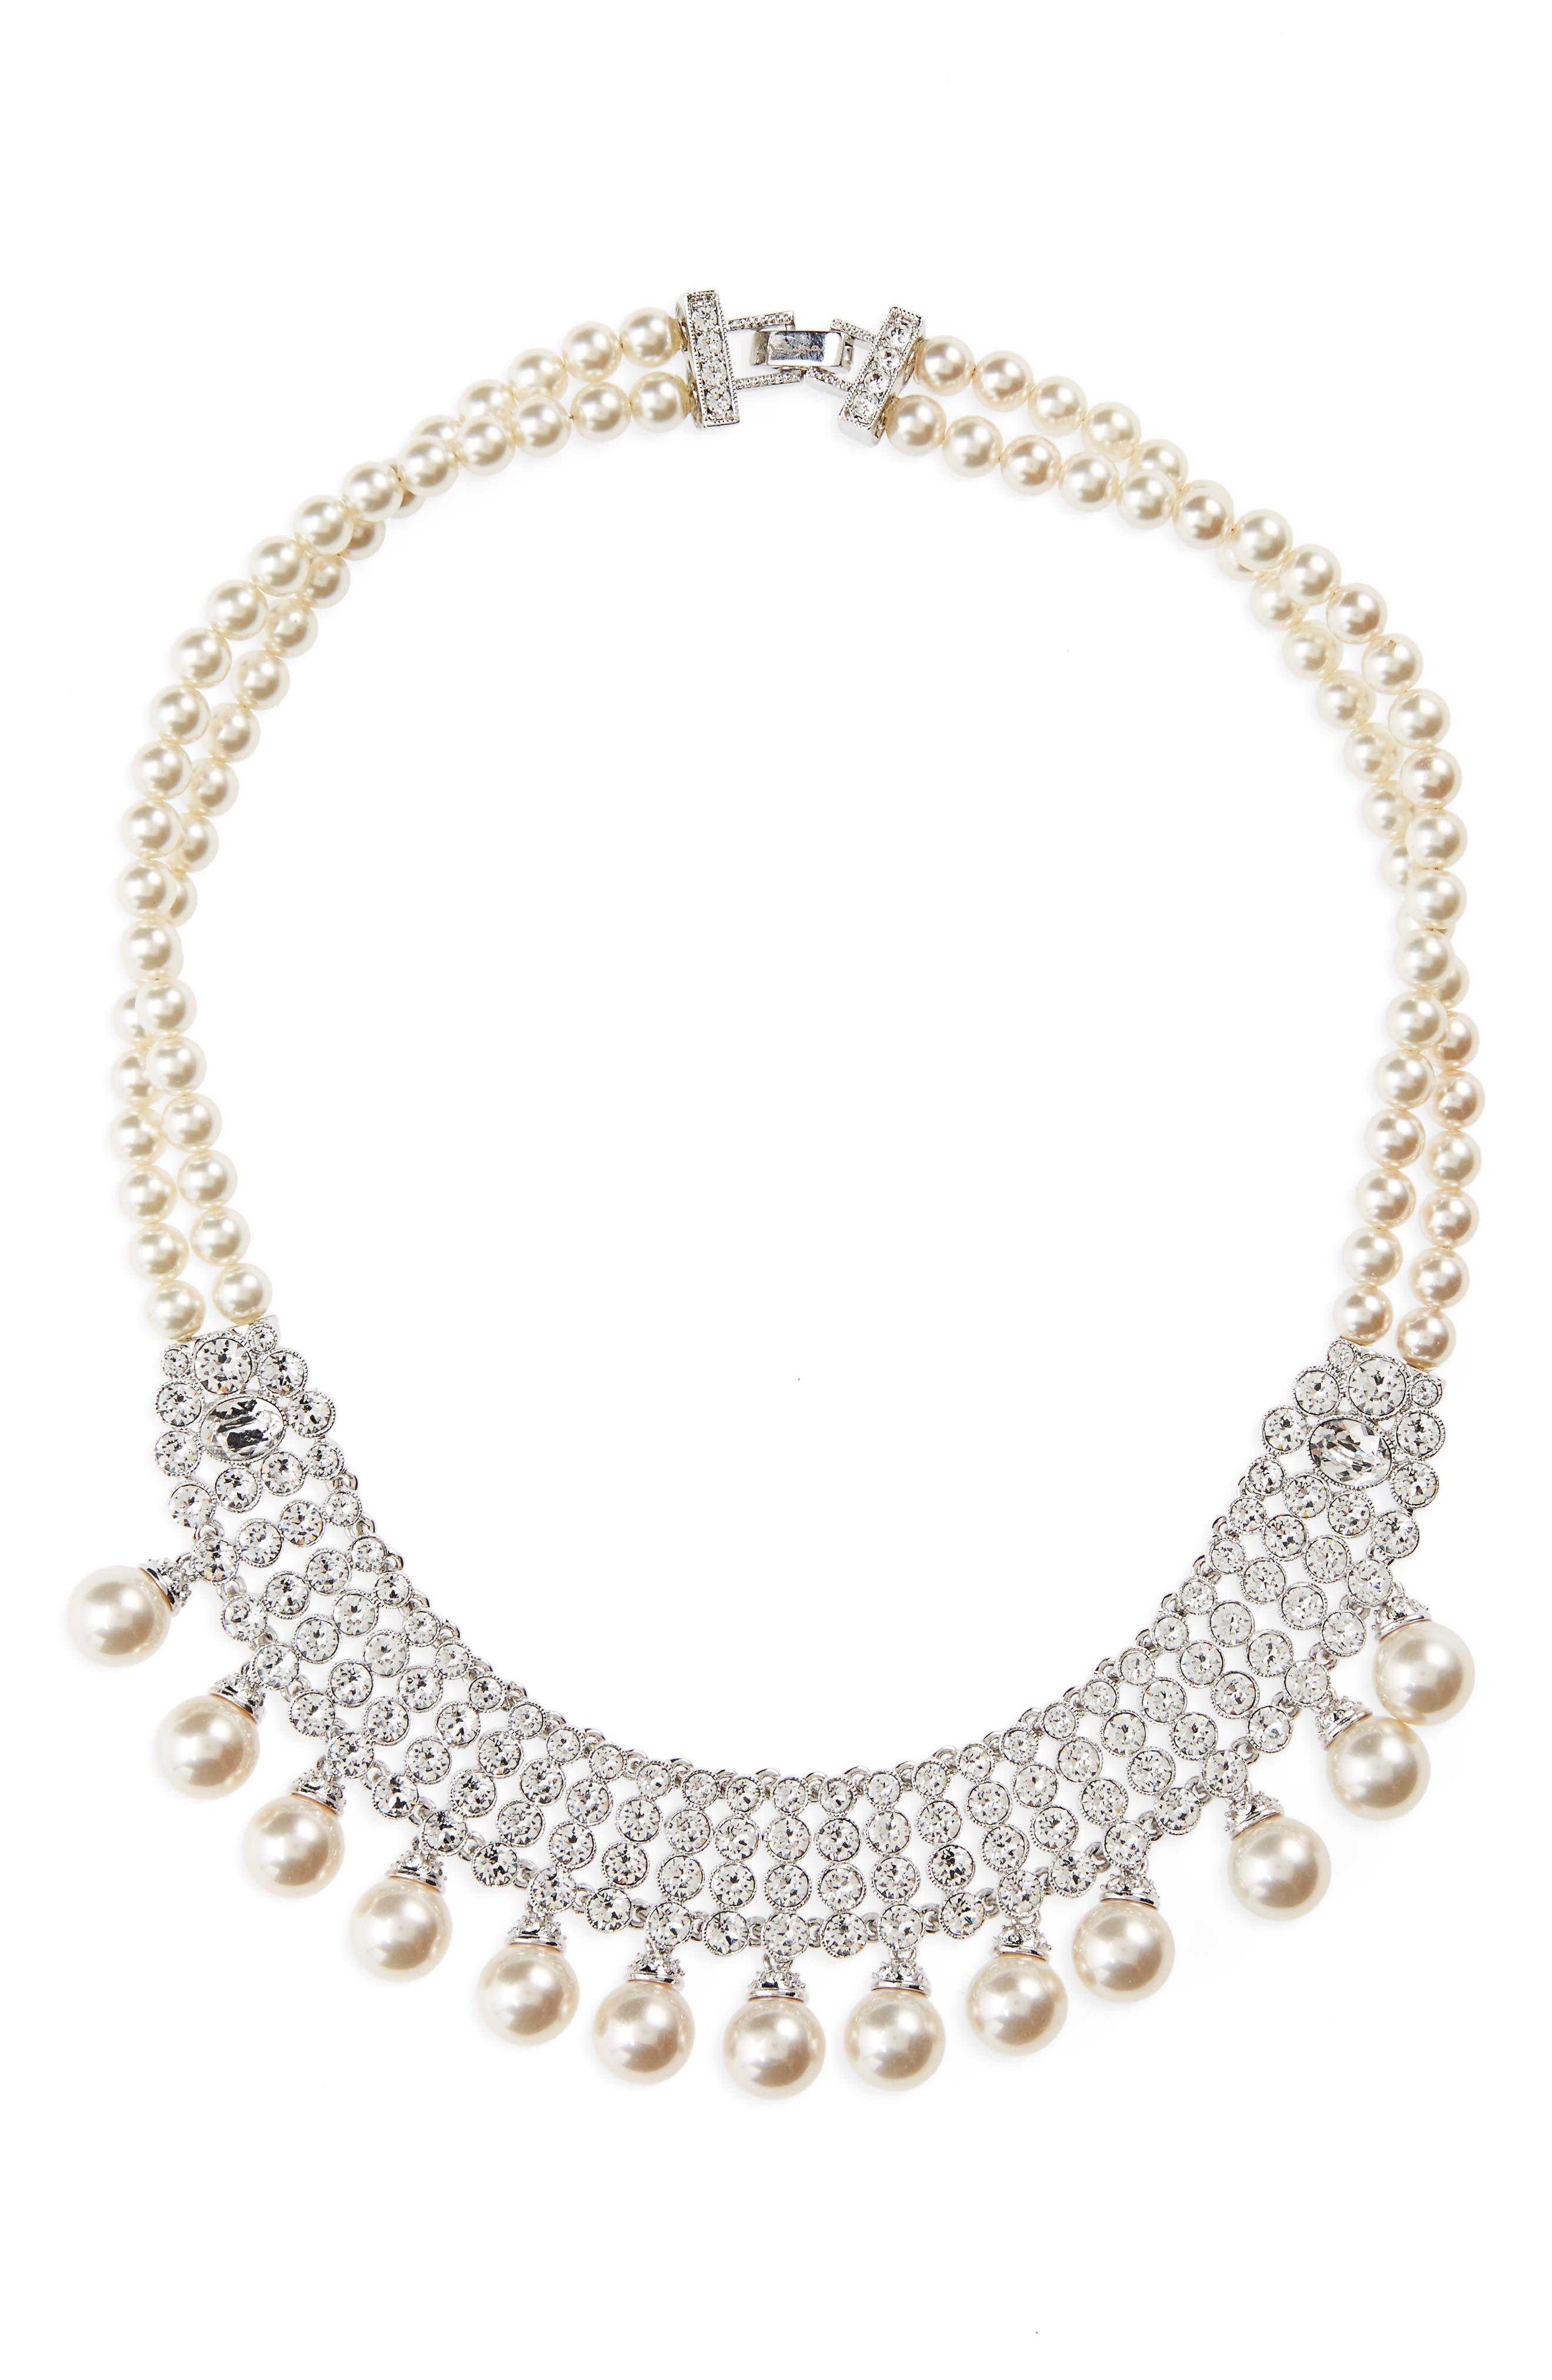 Glam Imitation Pearl Fringe Necklace,                             Main thumbnail 1, color,                             Ivory Pearl / Silver